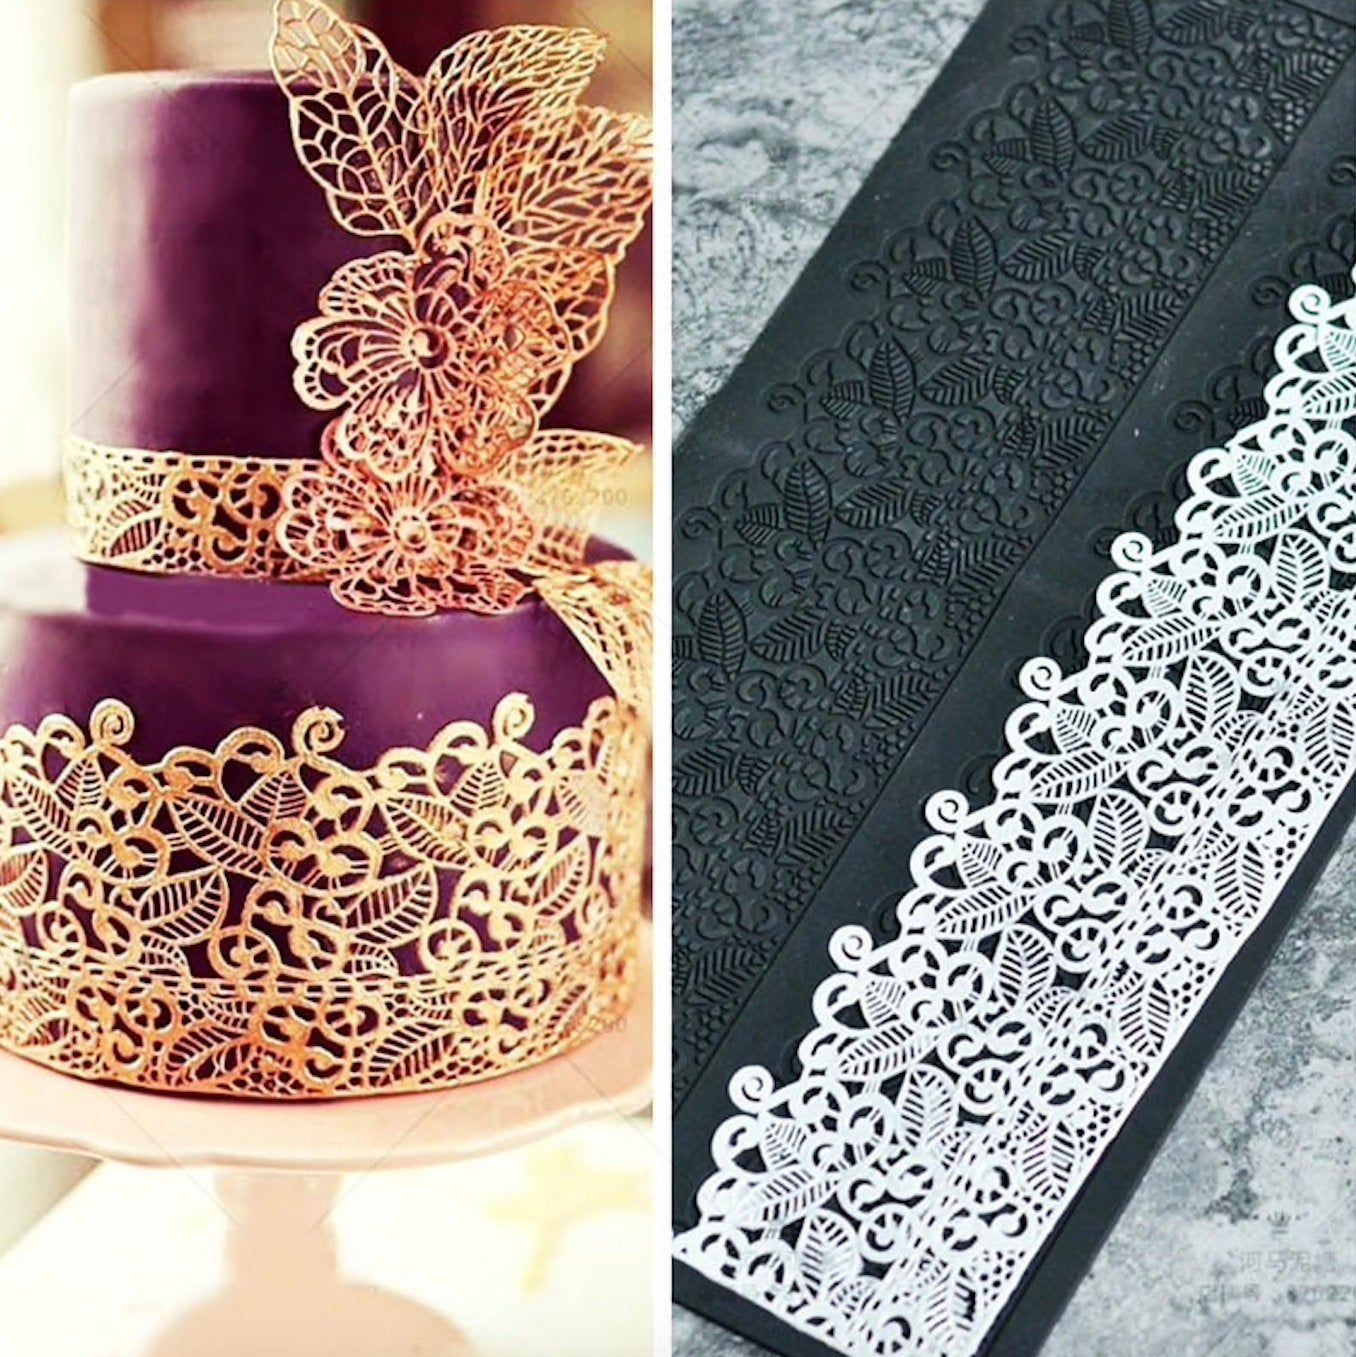 35++ Fondant lace molds for wedding cakes ideas in 2021